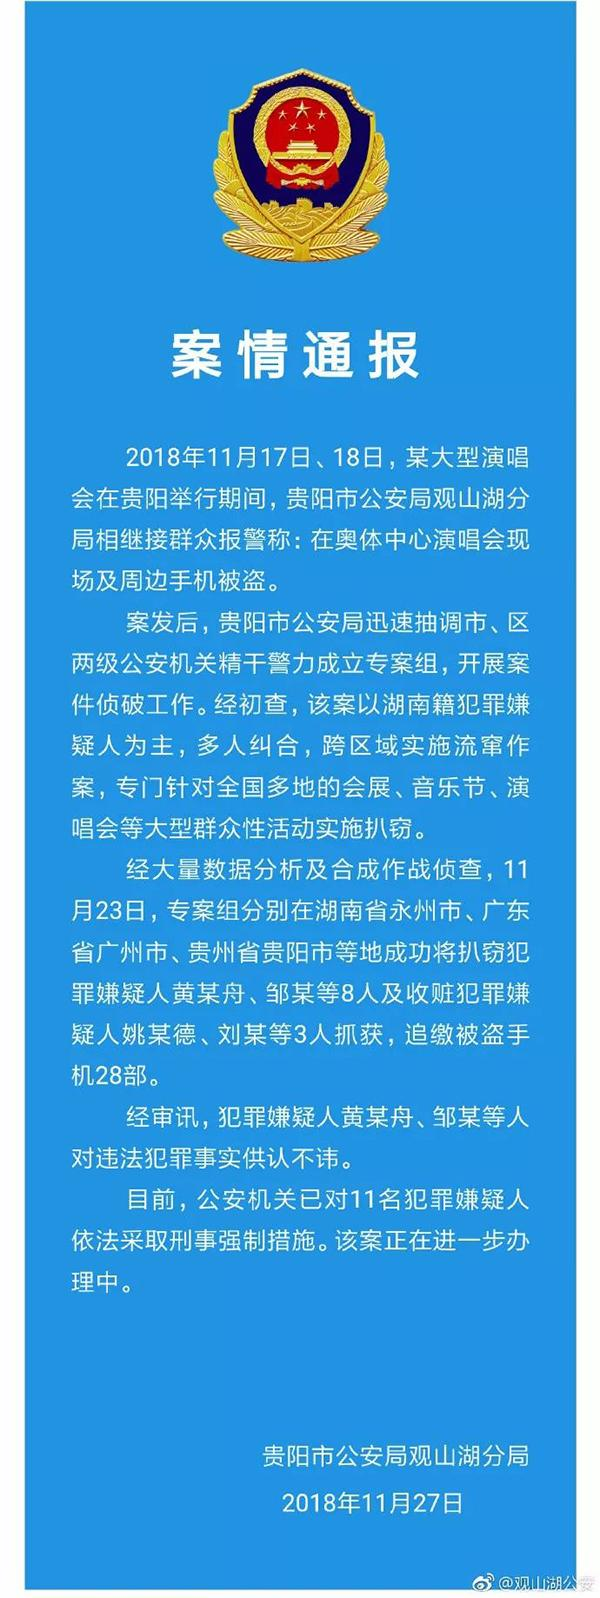 贵阳通报:周杰伦演唱会多起手机窃案告破,11名嫌疑人落网